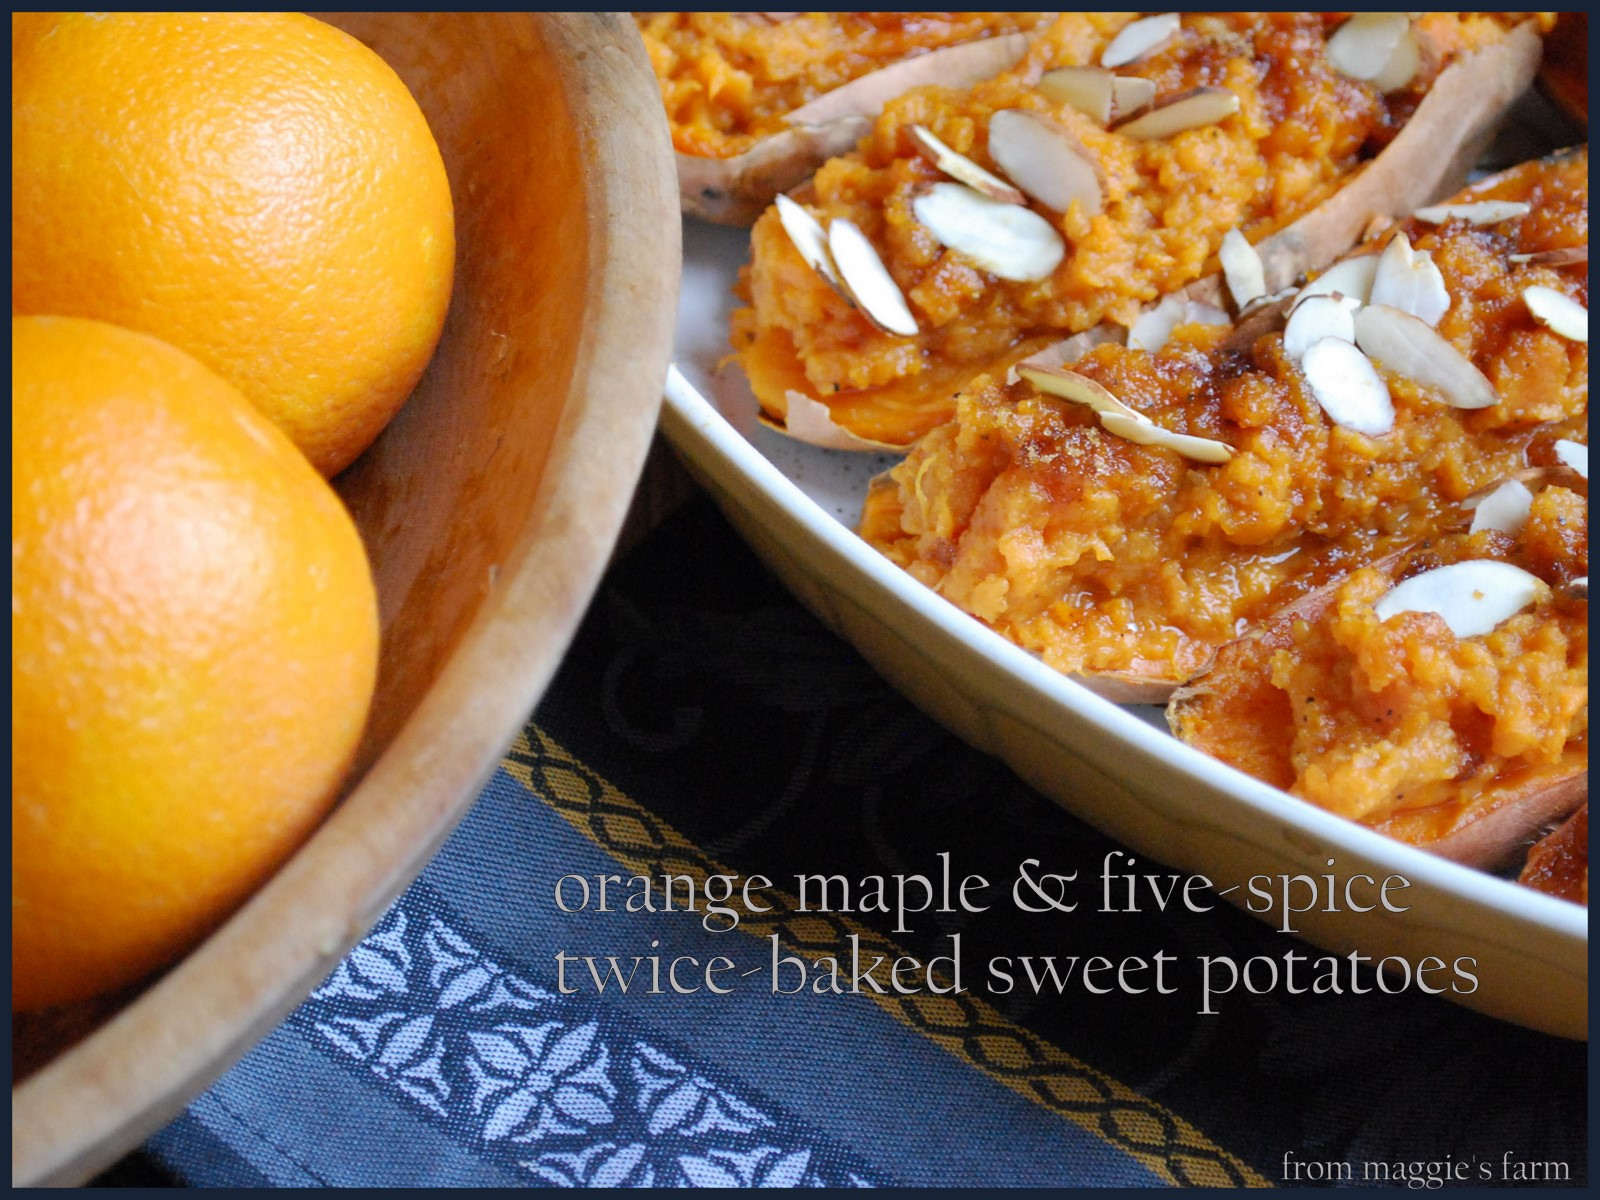 ... from Maggie's Farm: orange maple five-spice twice-baked sweet potatoes